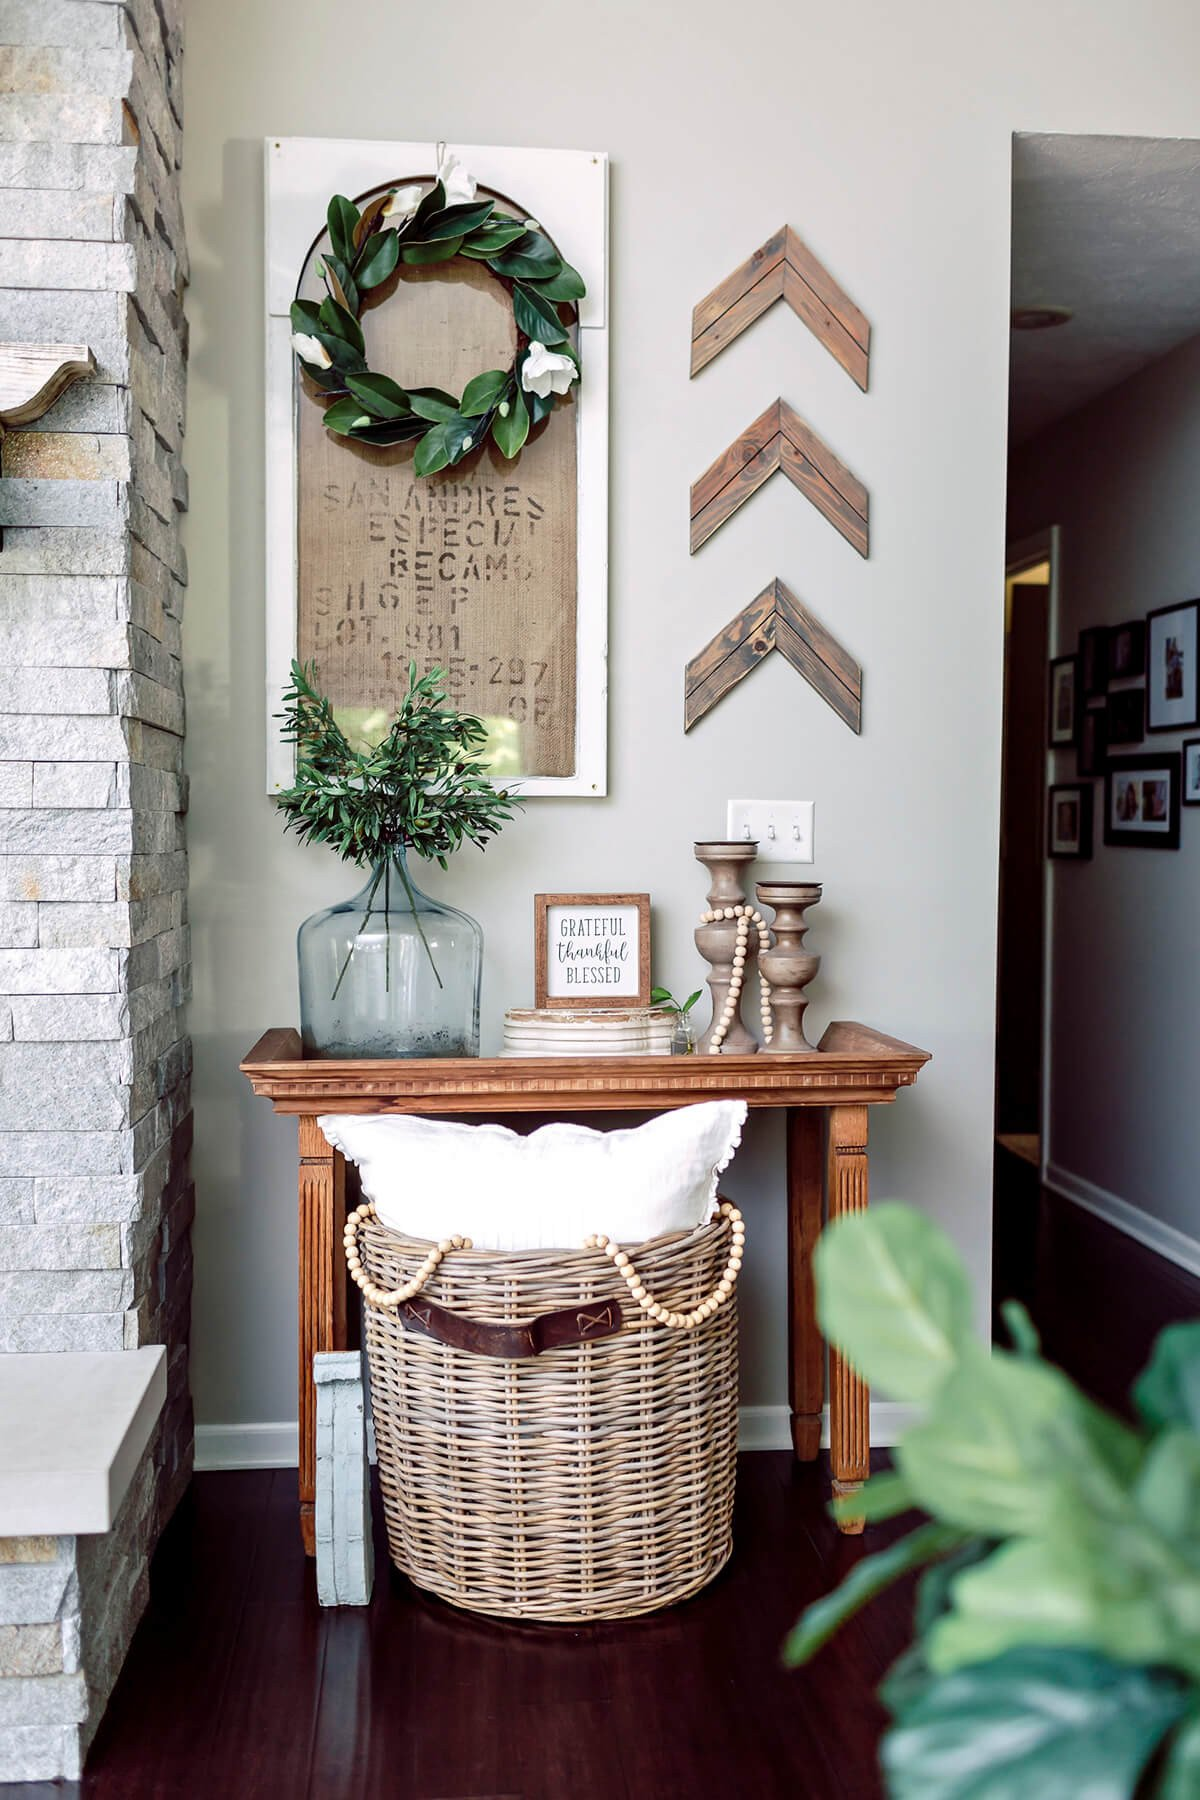 Wall Decor Ideas Living Room 33 Best Rustic Living Room Wall Decor Ideas and Designs